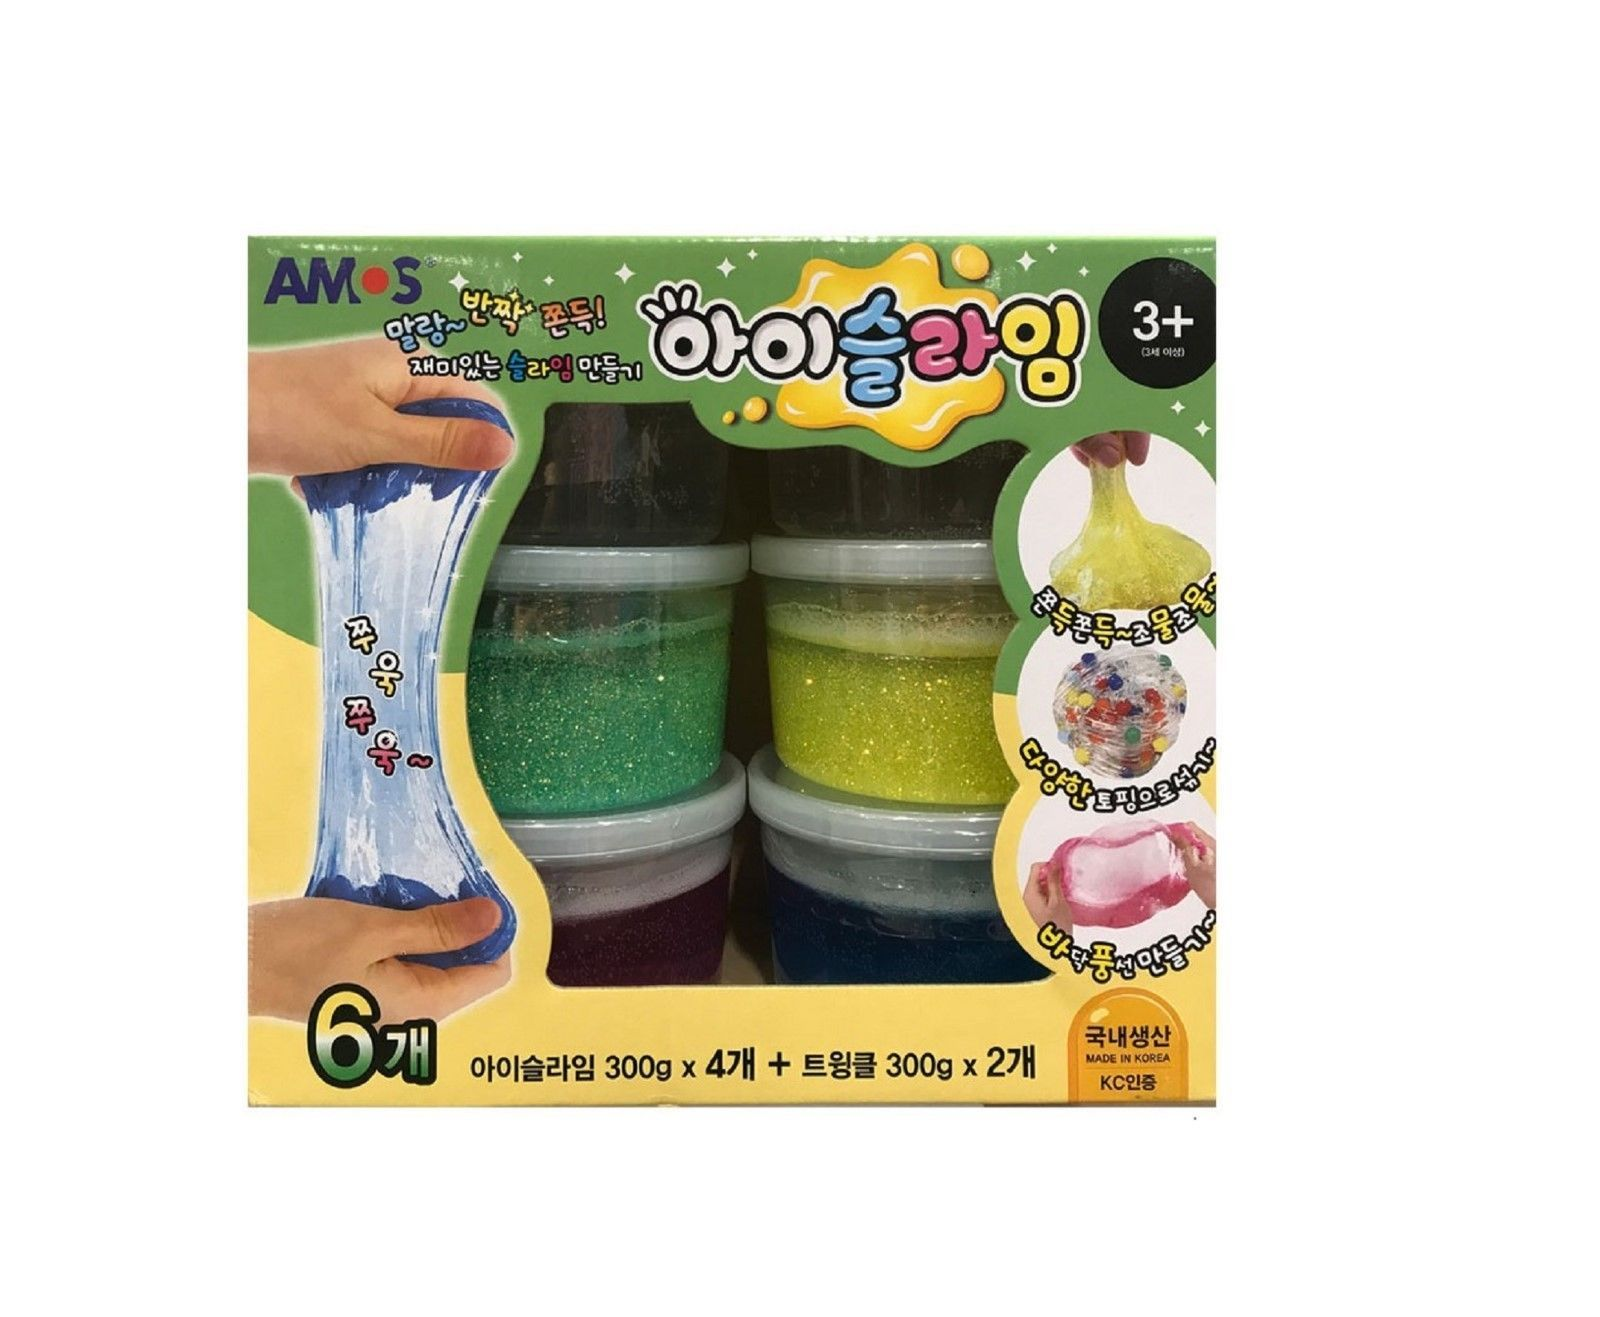 Amos Fluffy Liquid Monster Twinkle iSlime Slime Toy Set (Count of 6)